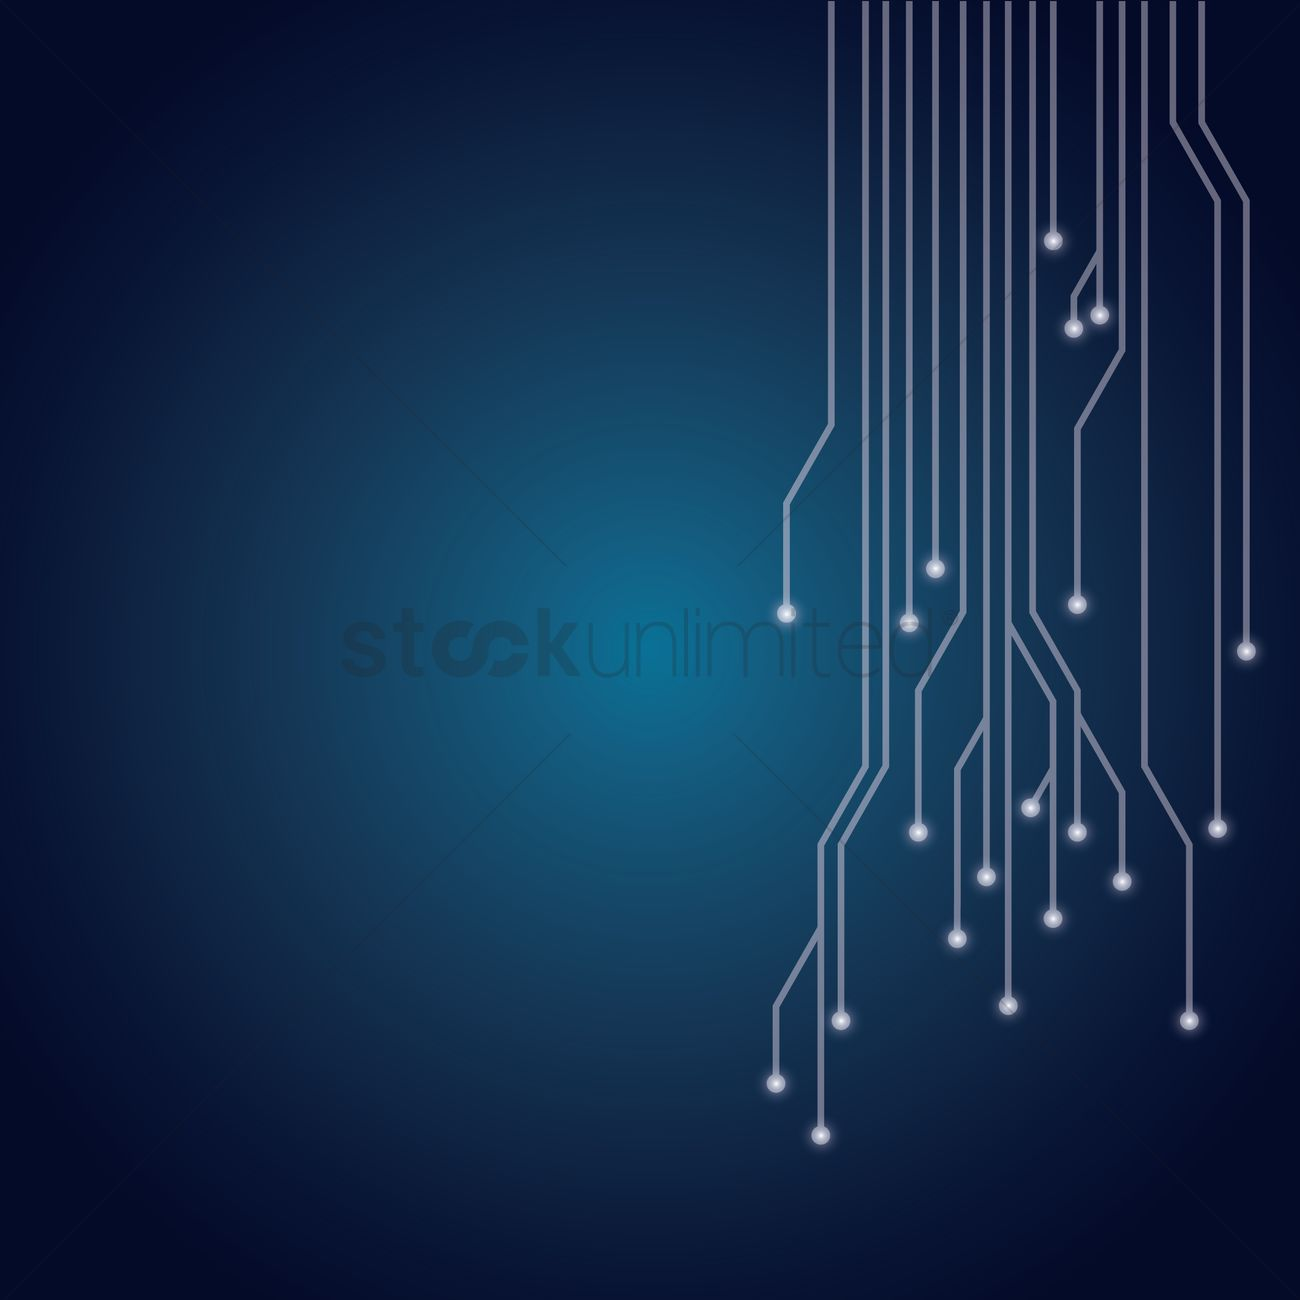 Circuit board design Vector Image - 1647153 | StockUnlimited